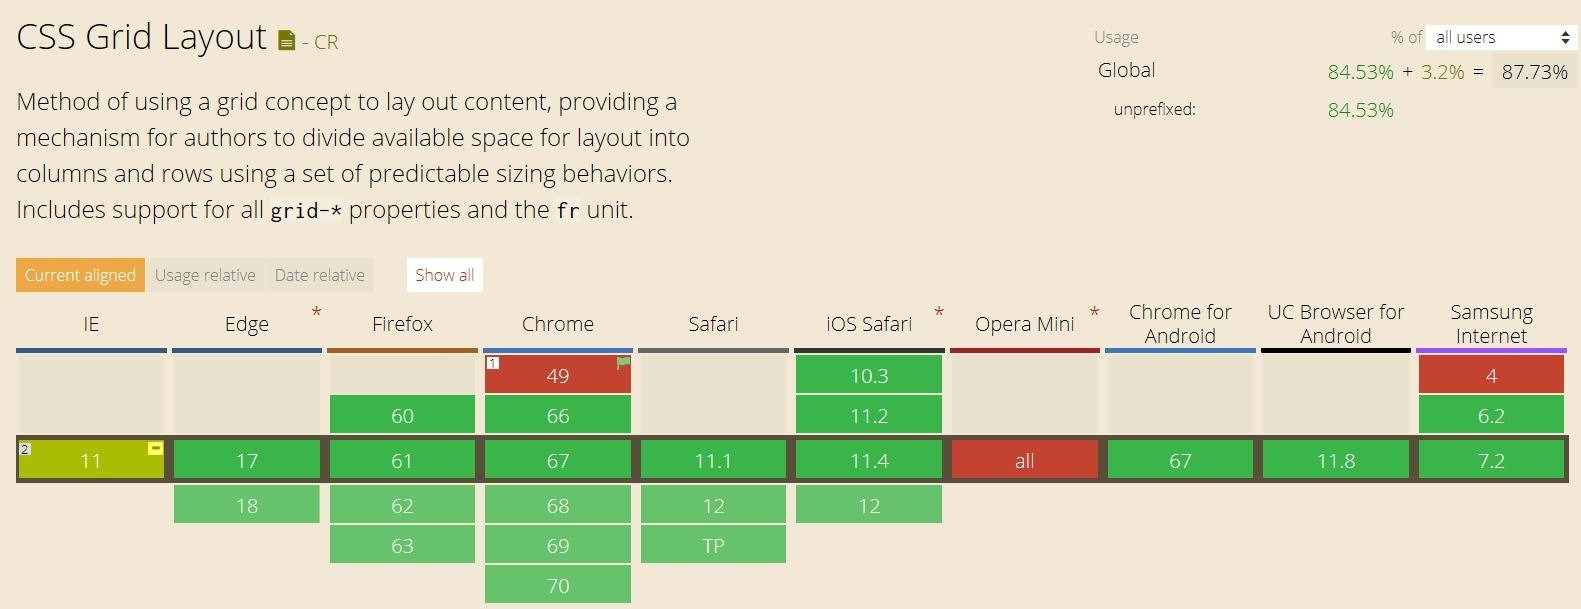 CSS Grid Layout is now supported by almost all browsers and can be use safely